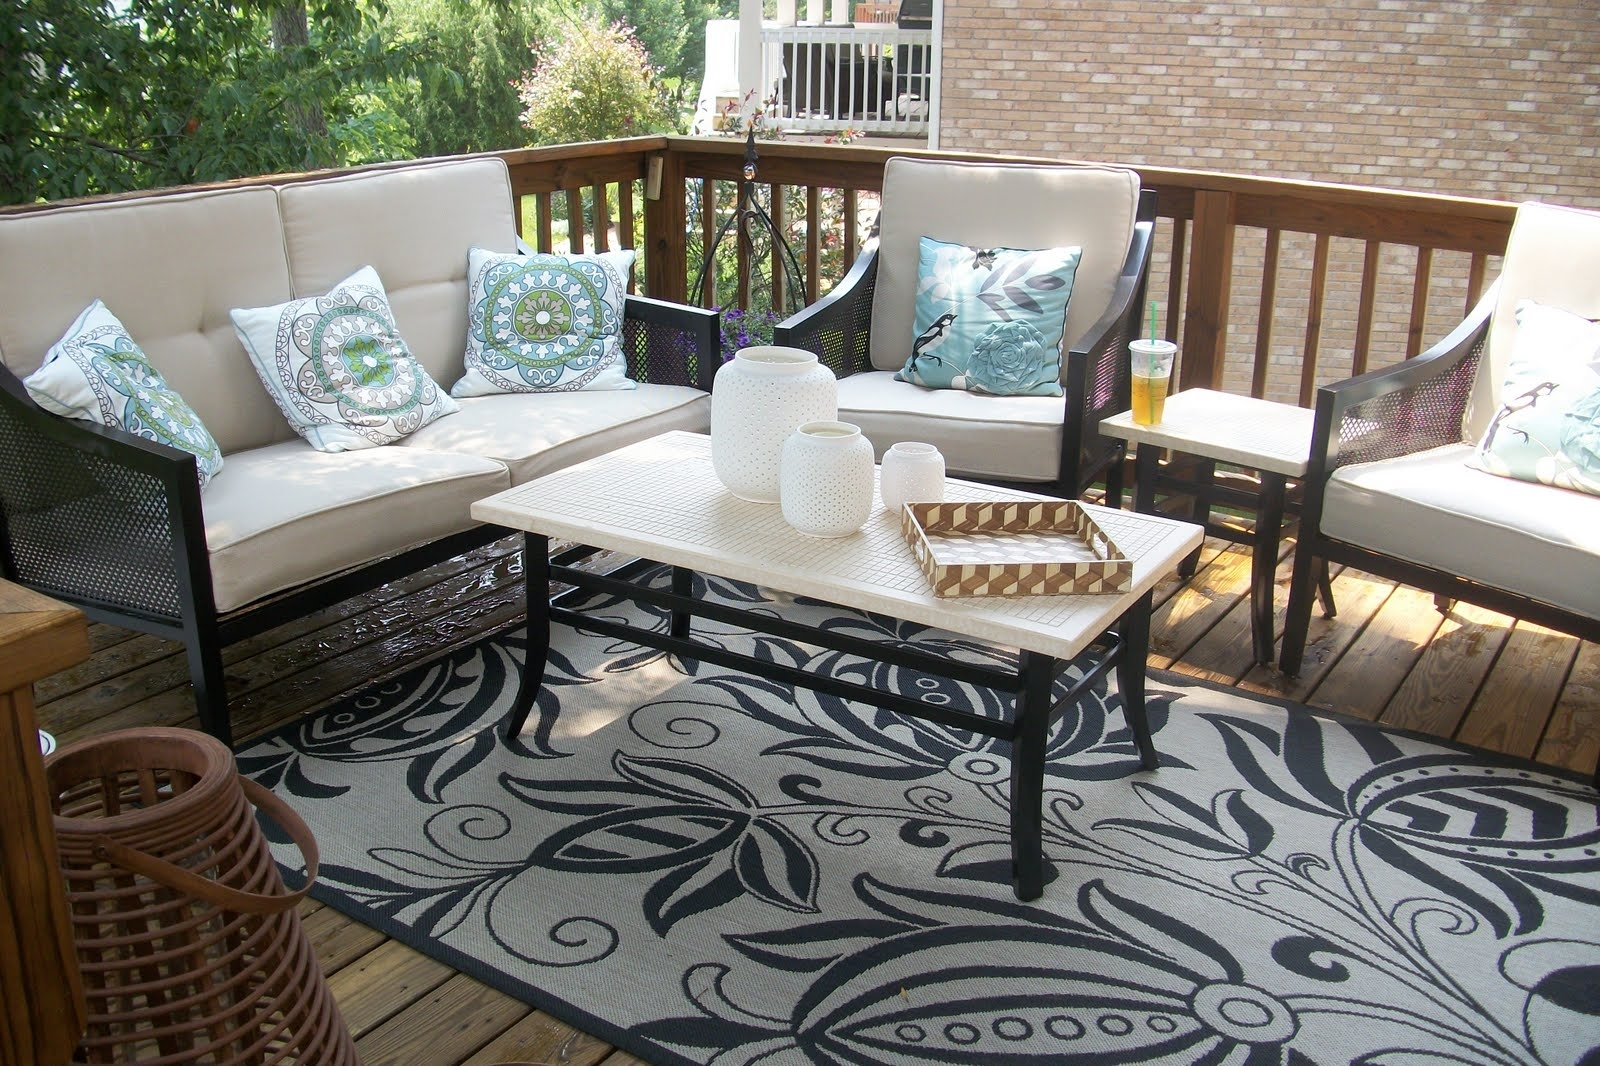 Target Patio Furniture Conversation Sets Inside Best And Newest Patio : Outdoor Patio Furniture Walmart Target Engaging Image (View 15 of 20)